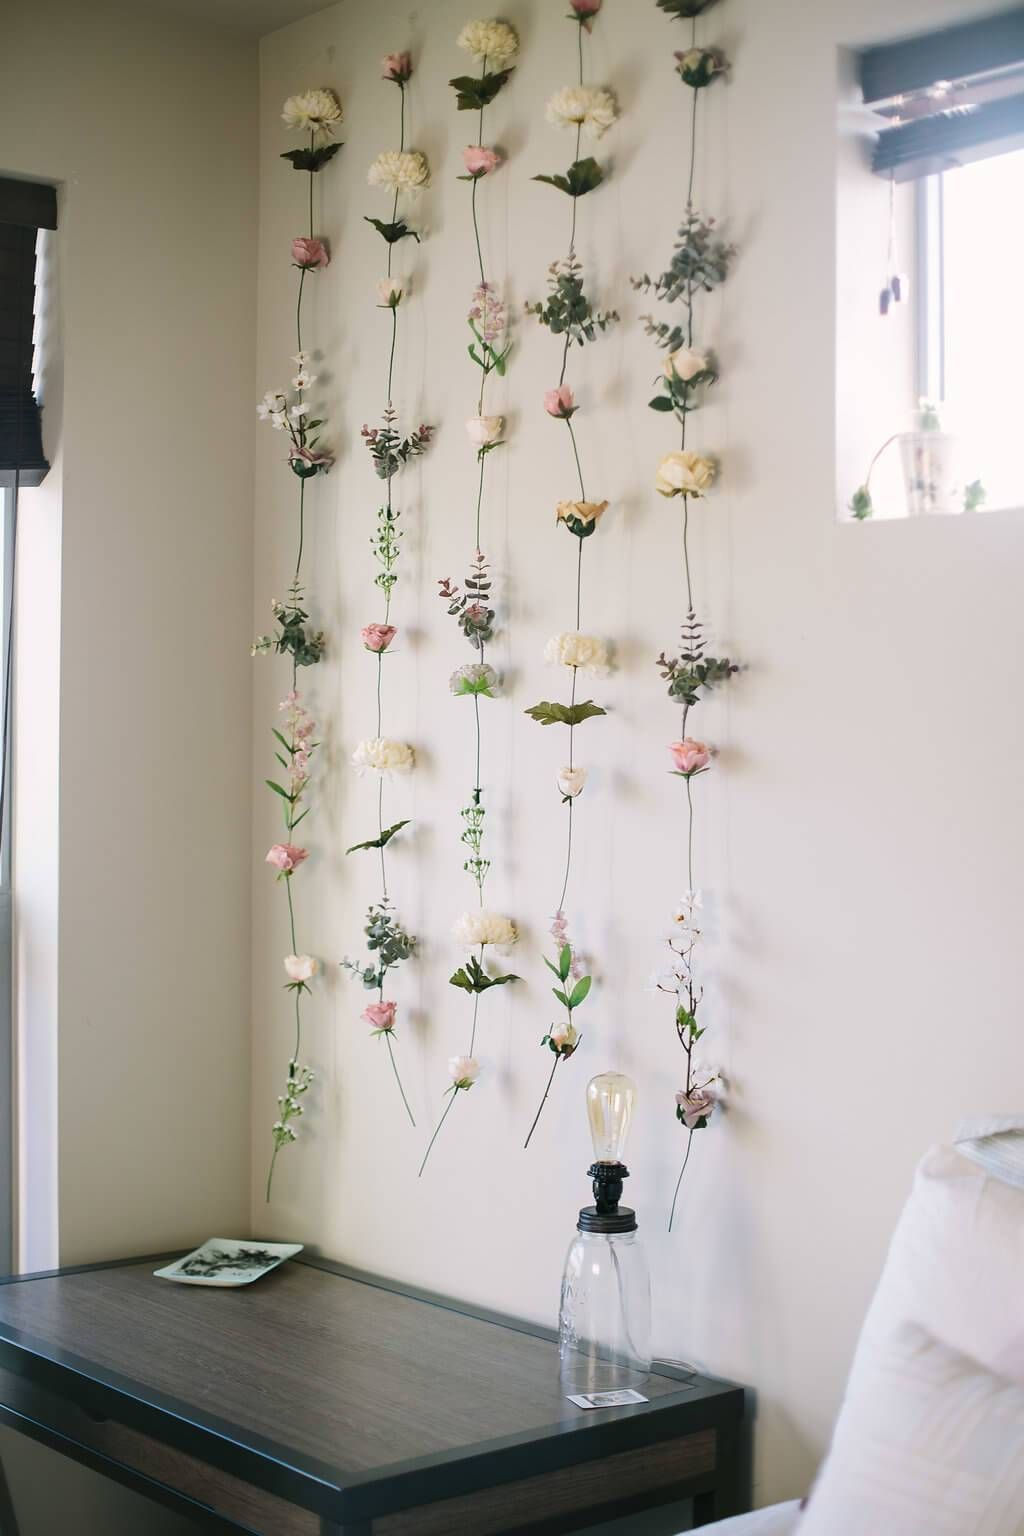 Best Good Idea To Dry Flowers And Pin Them To Ribbons And Hang 640 x 480